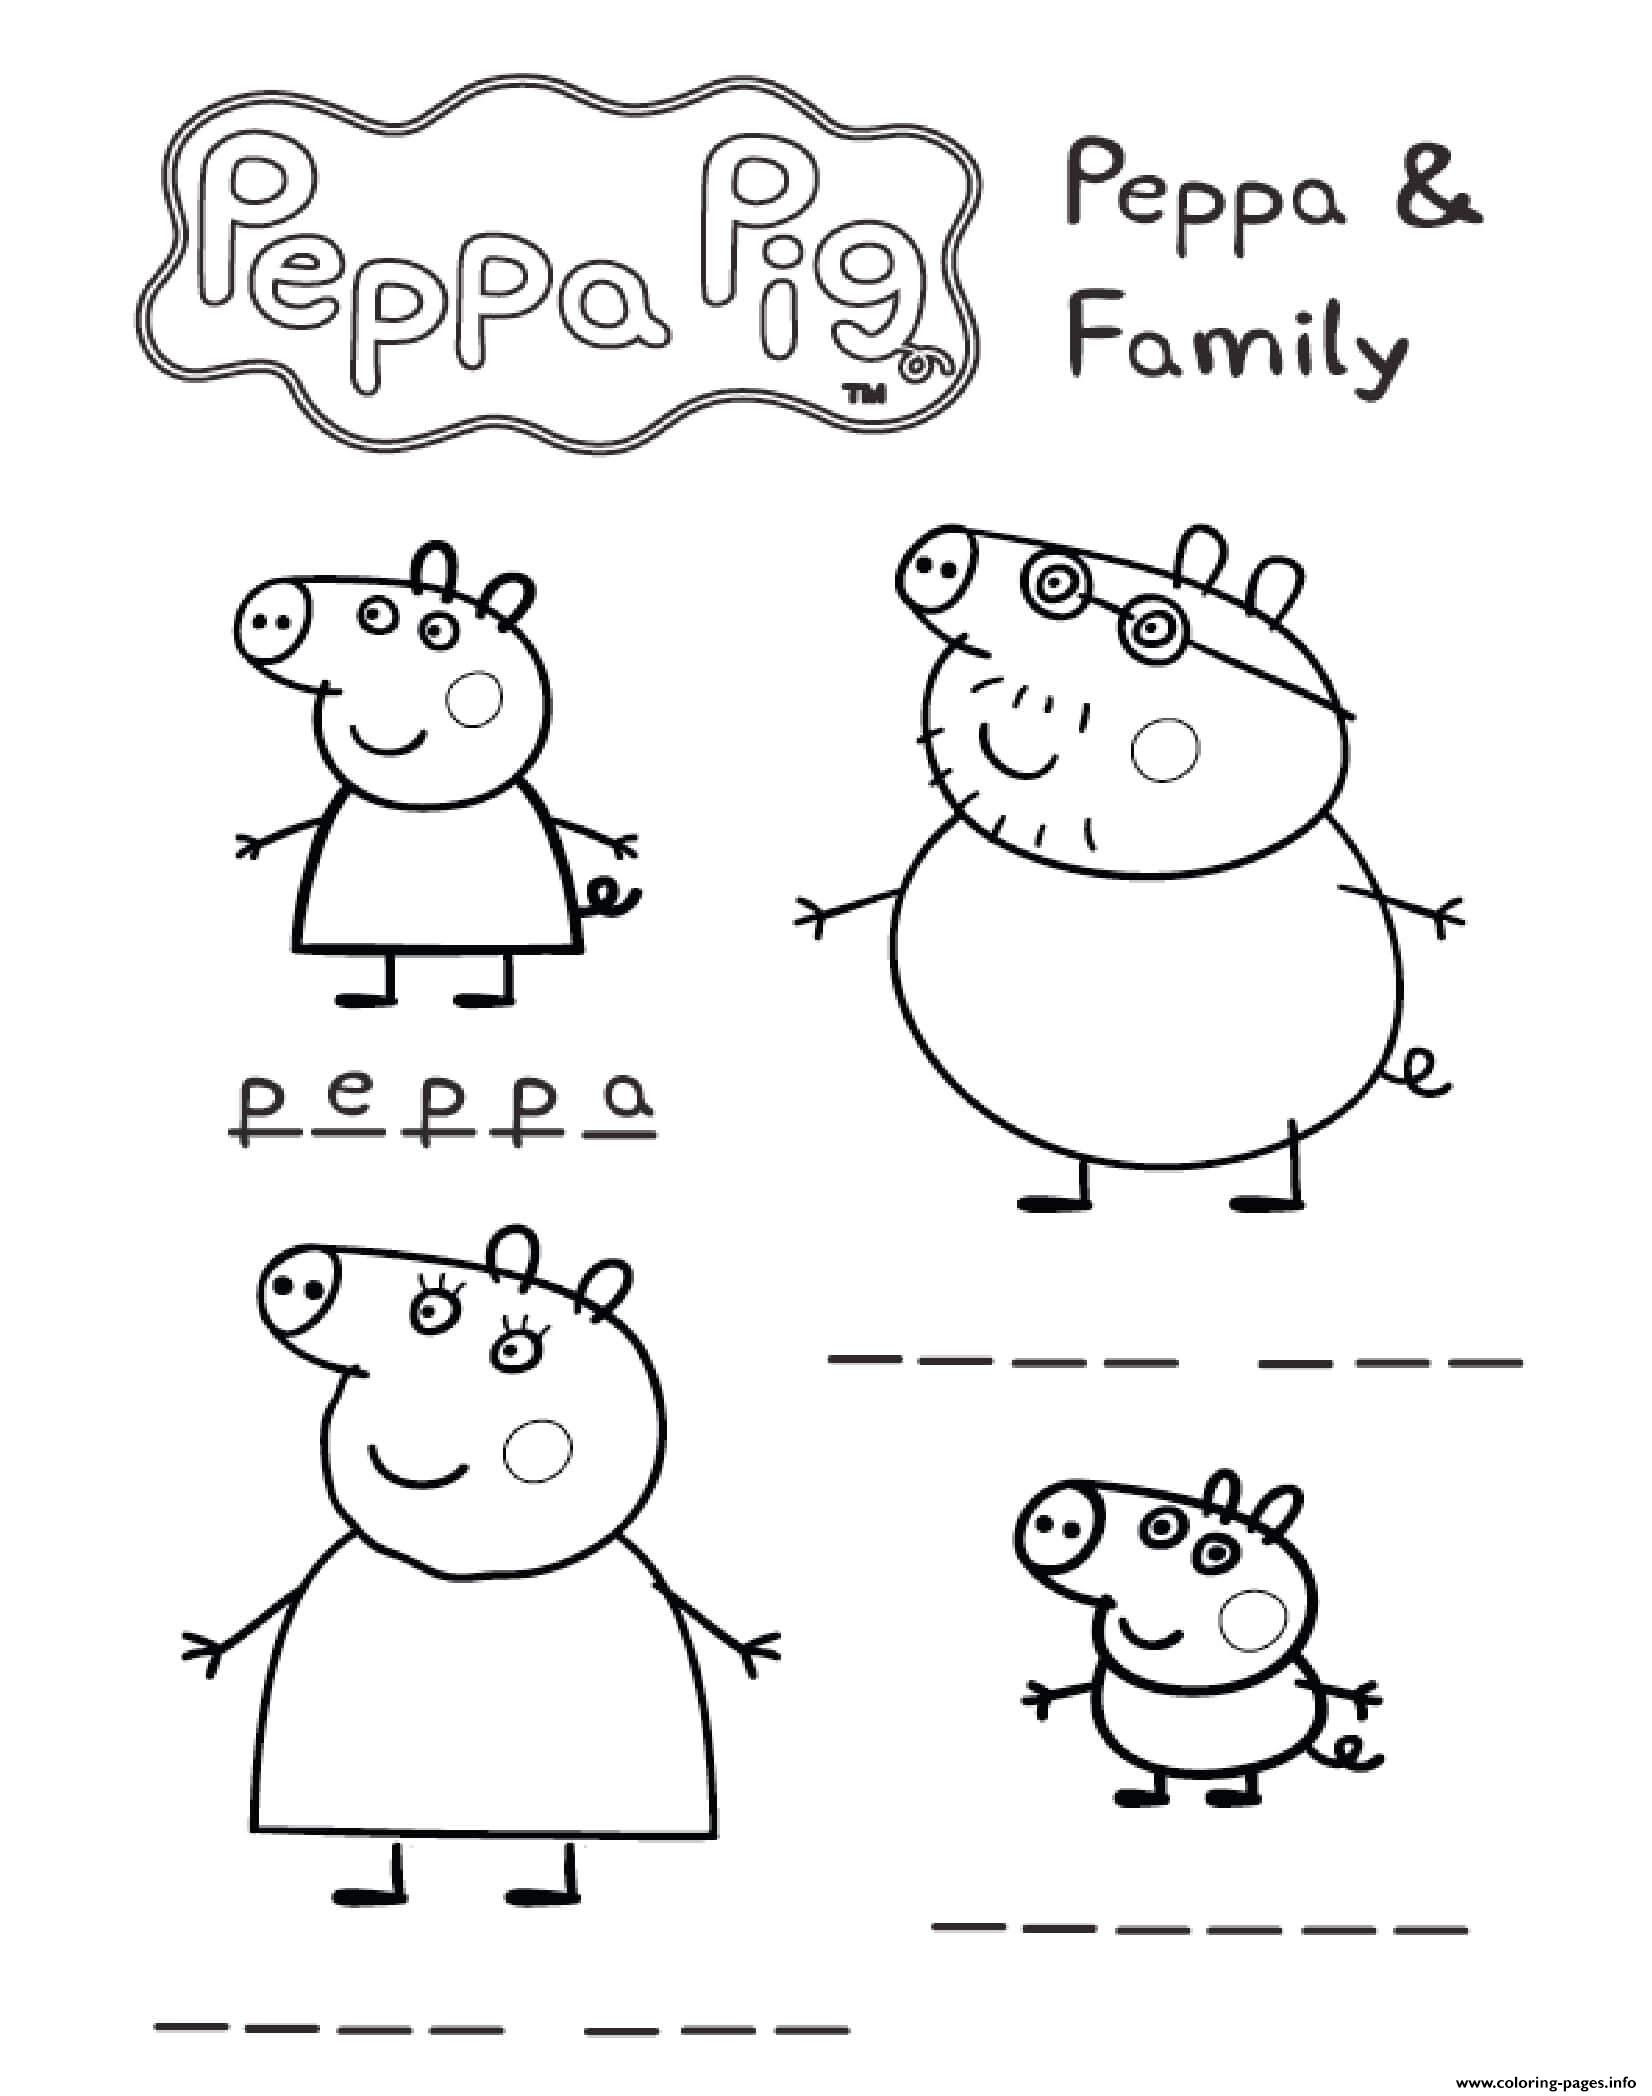 Peppa And Family Games Peppa Pig